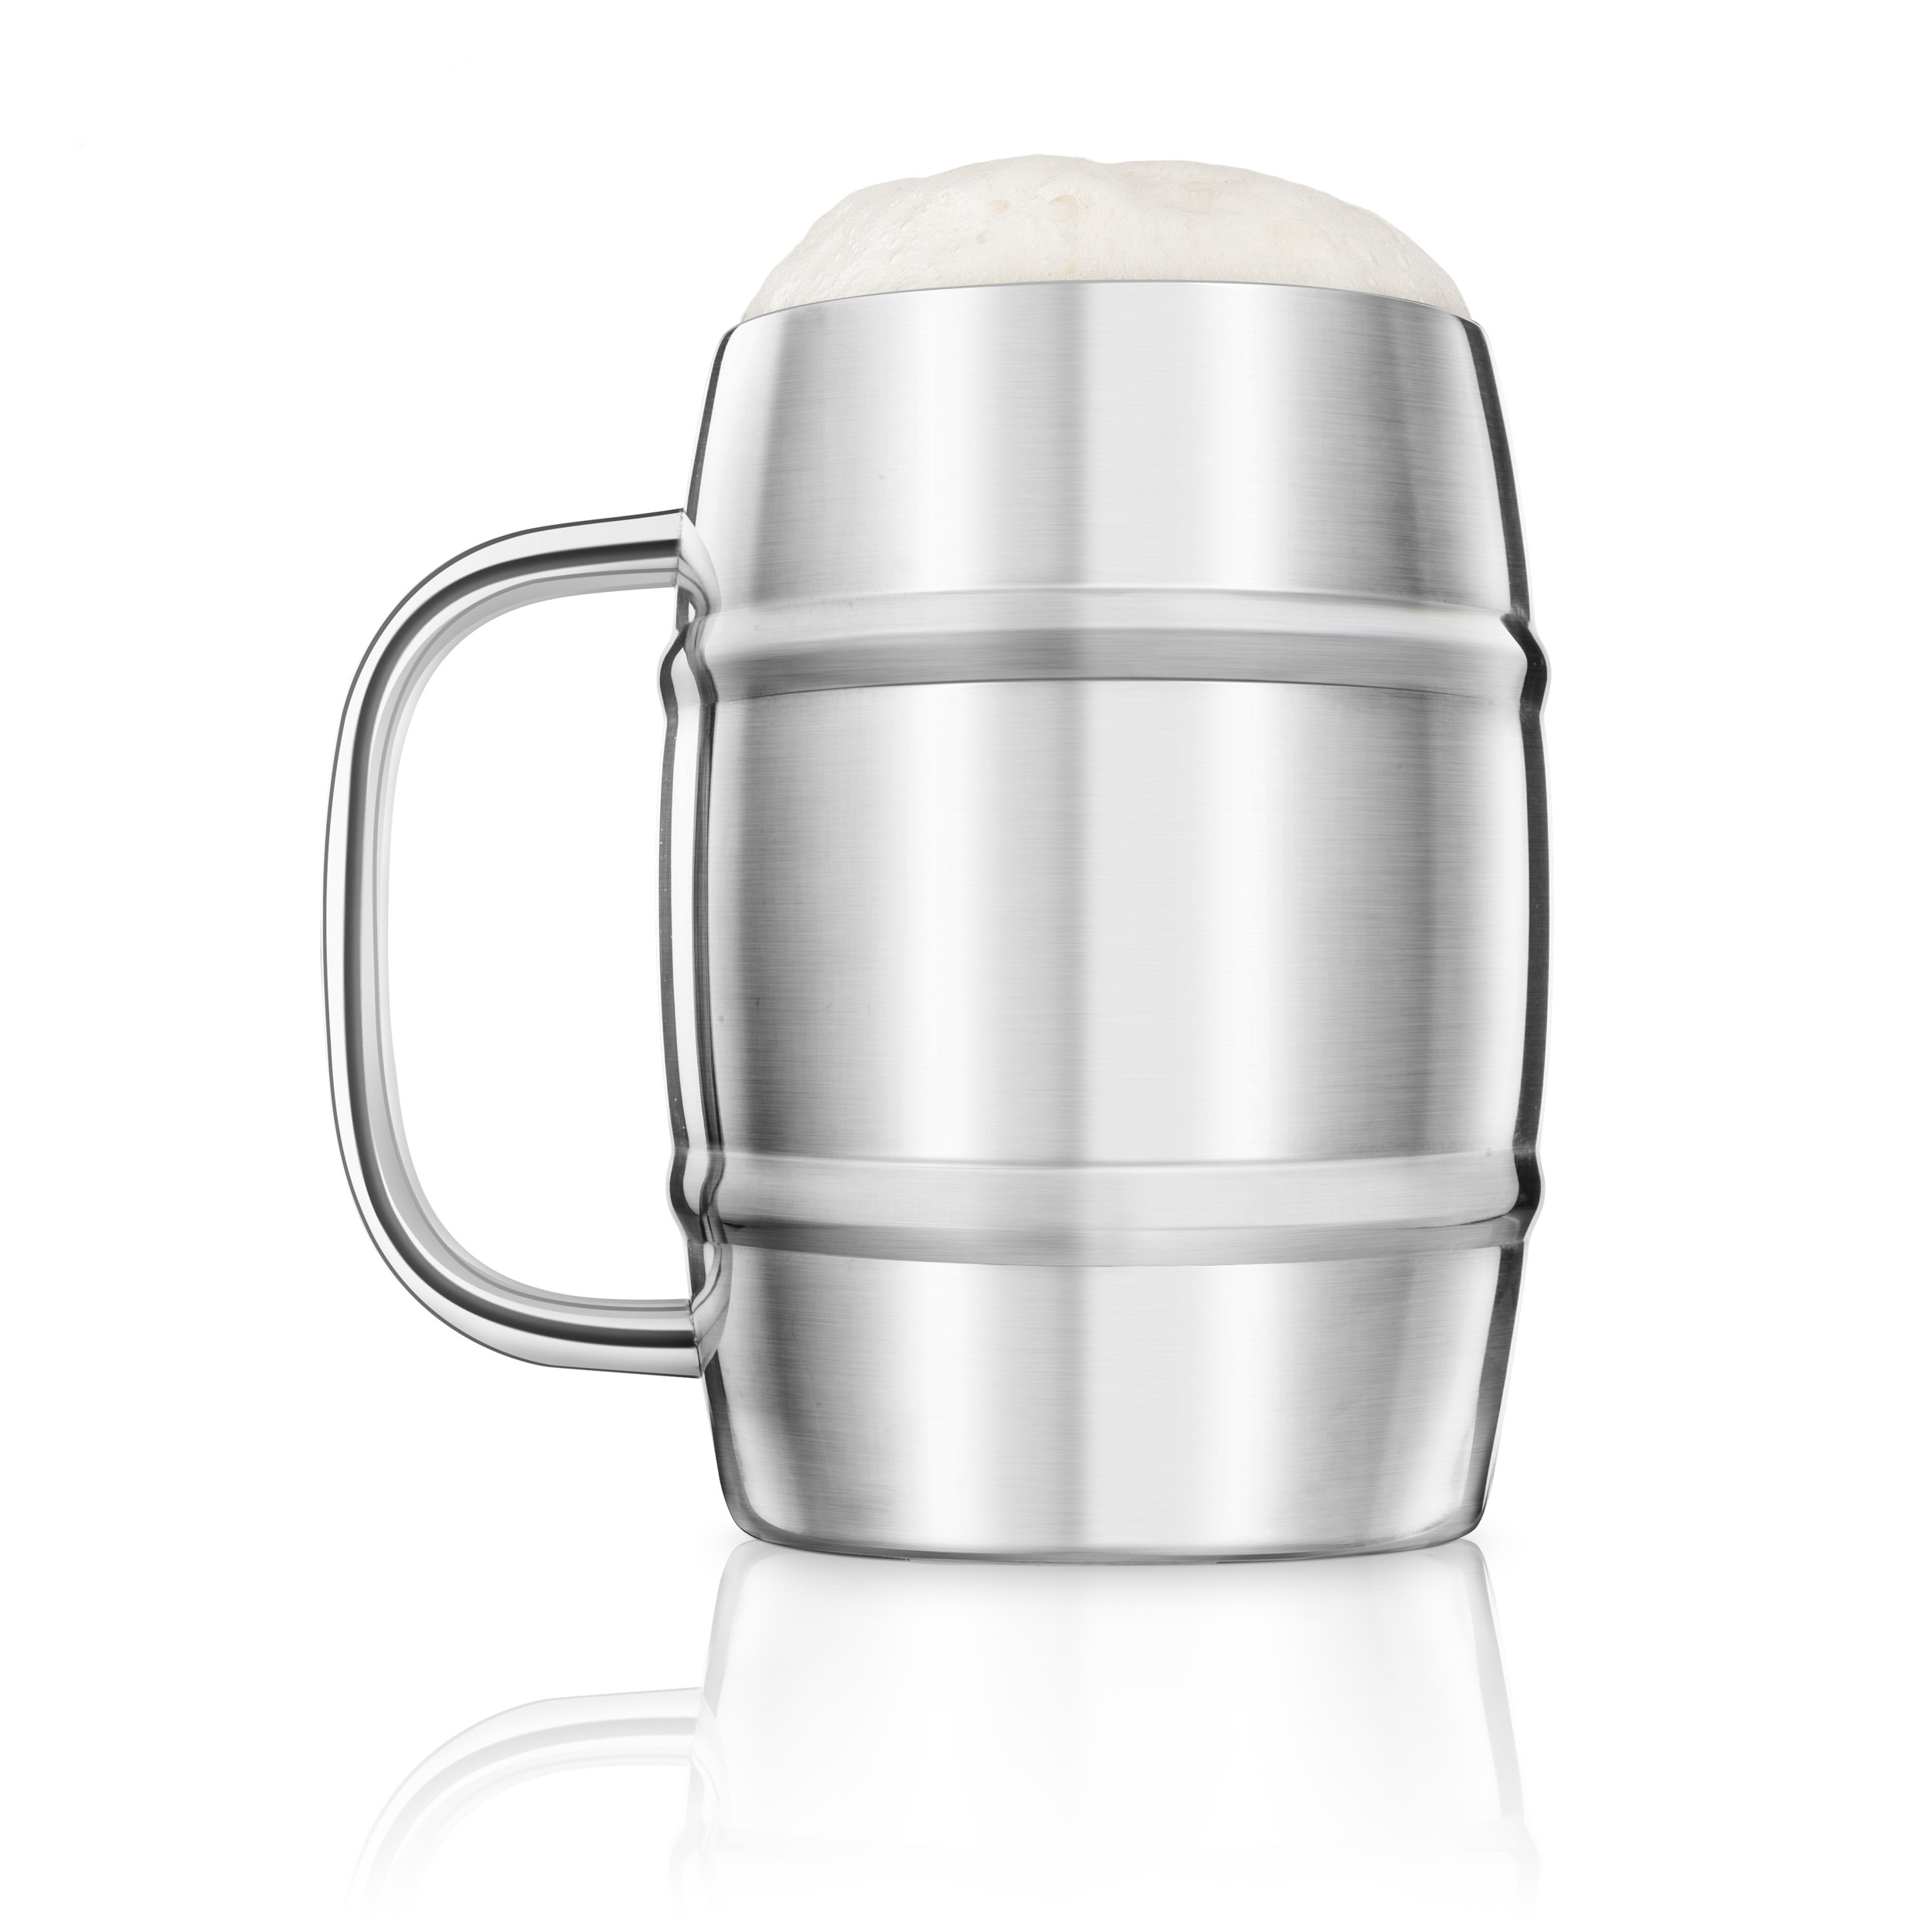 Final Touch Stainless Steel Double-Wall Beer Keg Mug